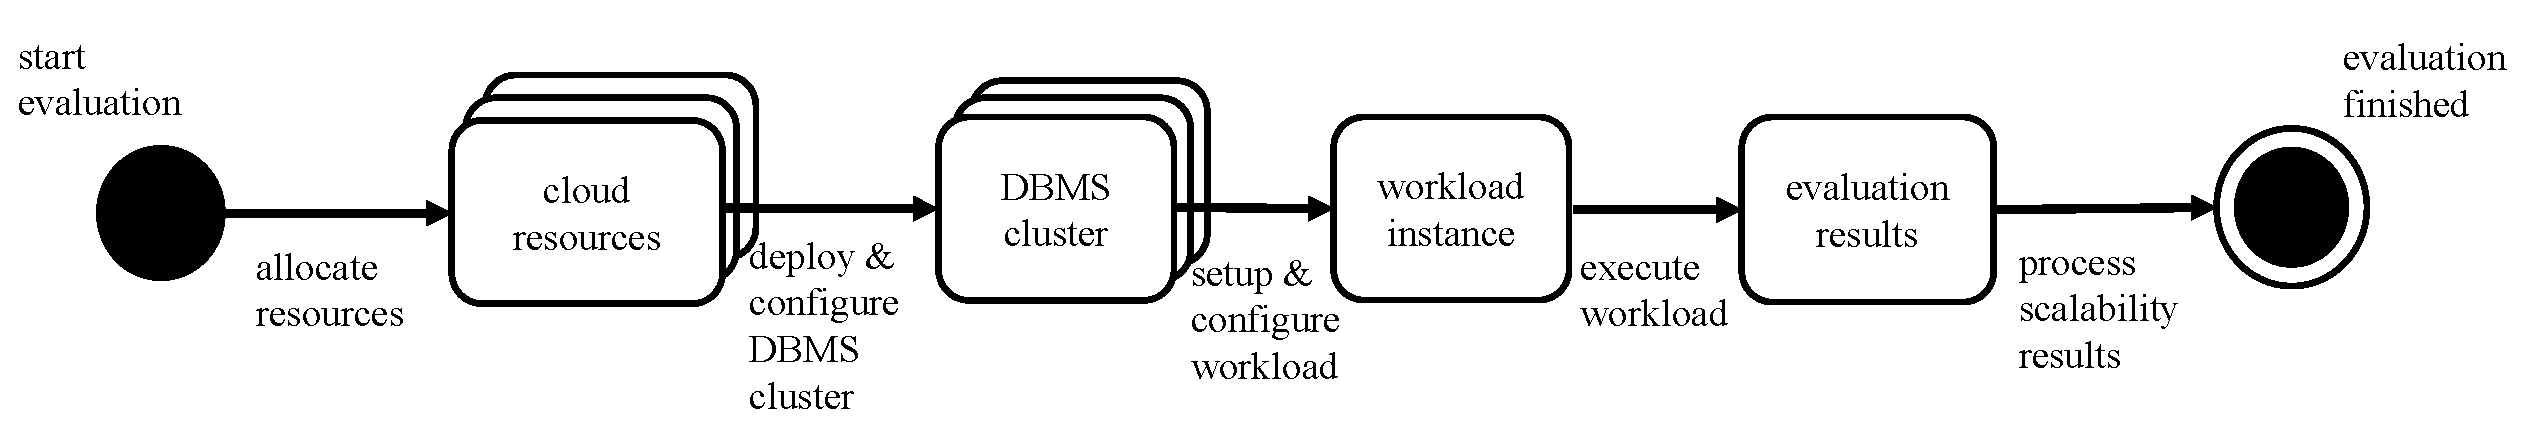 misc/evaluation_process_scalability.png